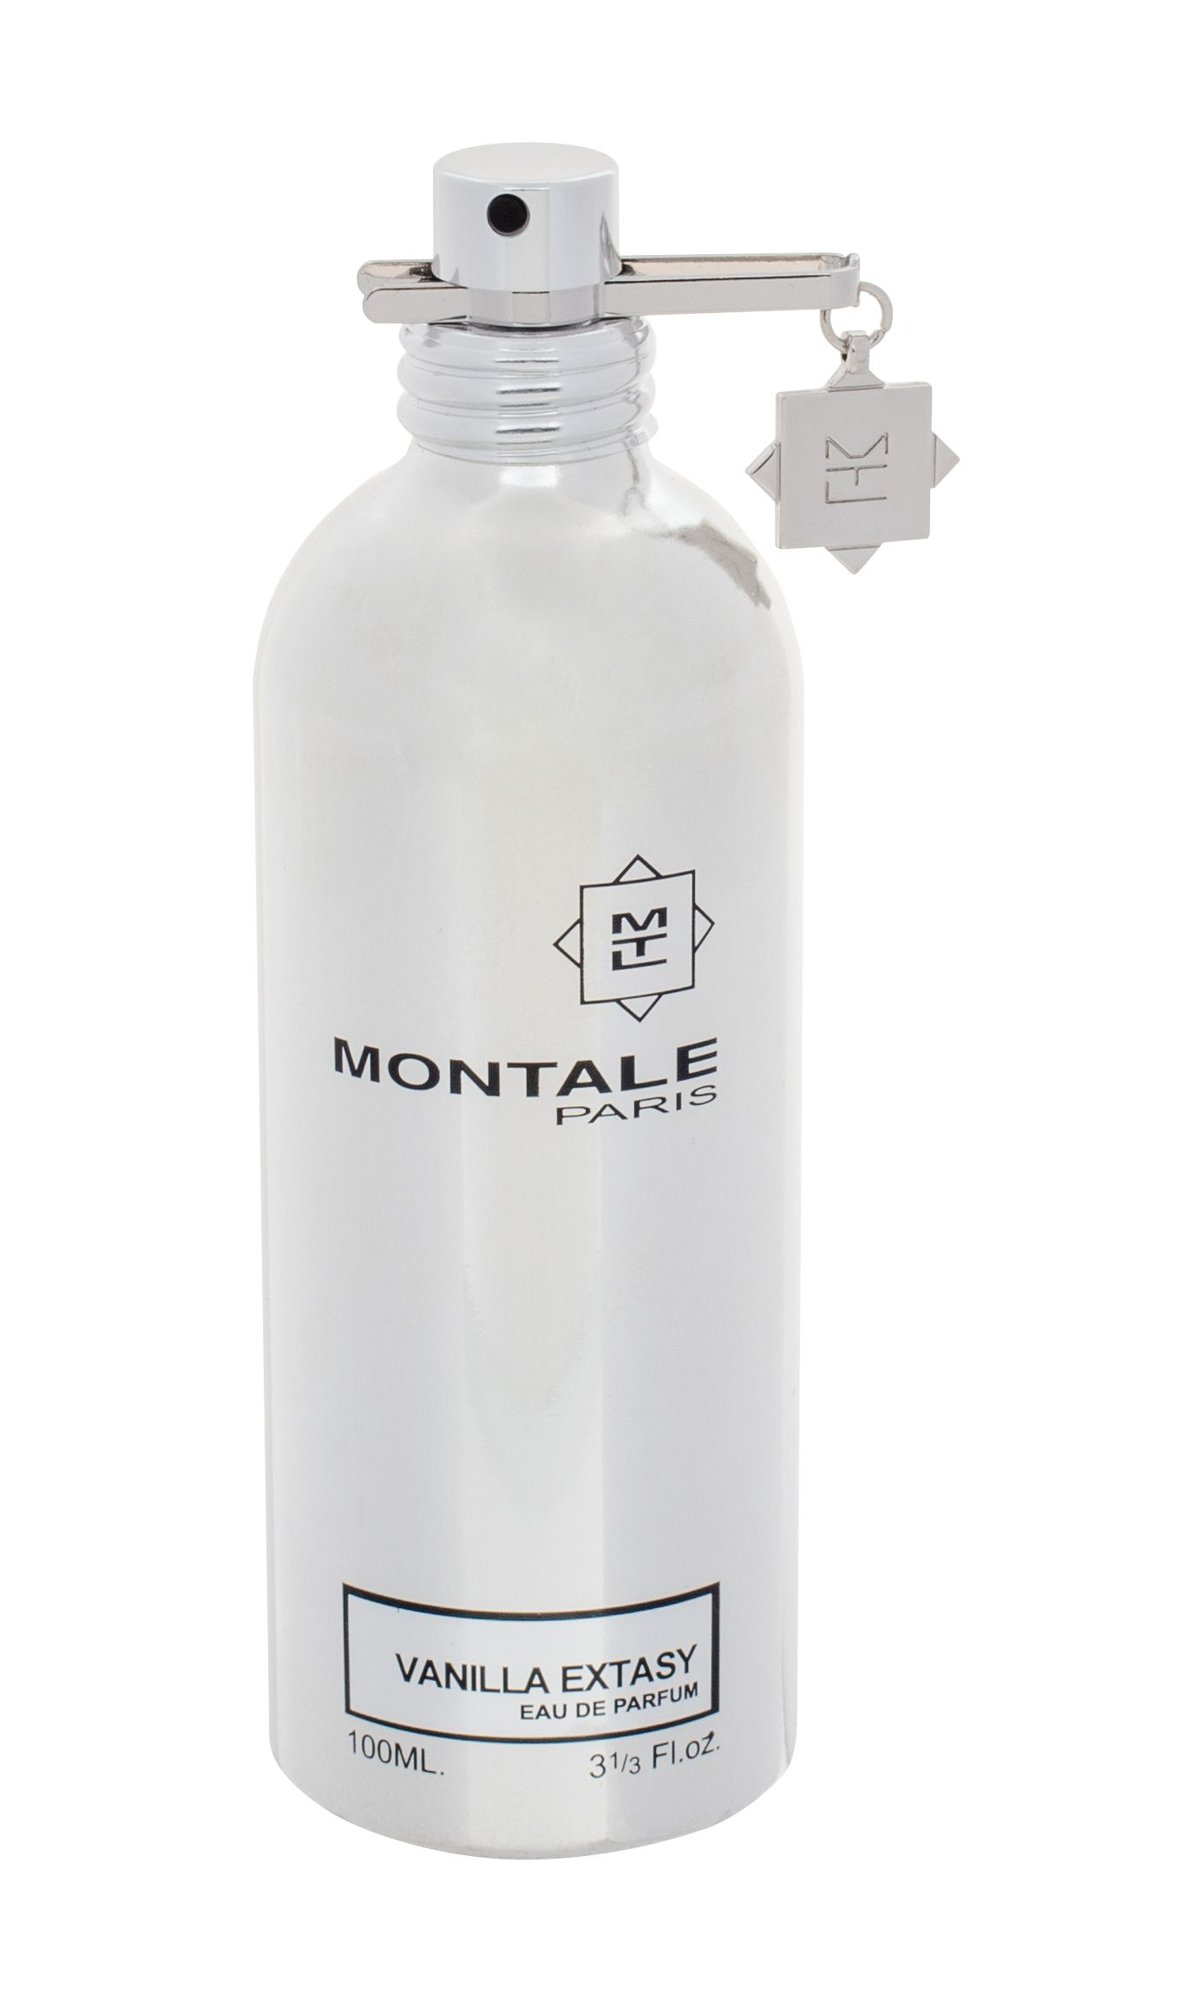 Montale Paris Vanilla Extasy EDP 100ml